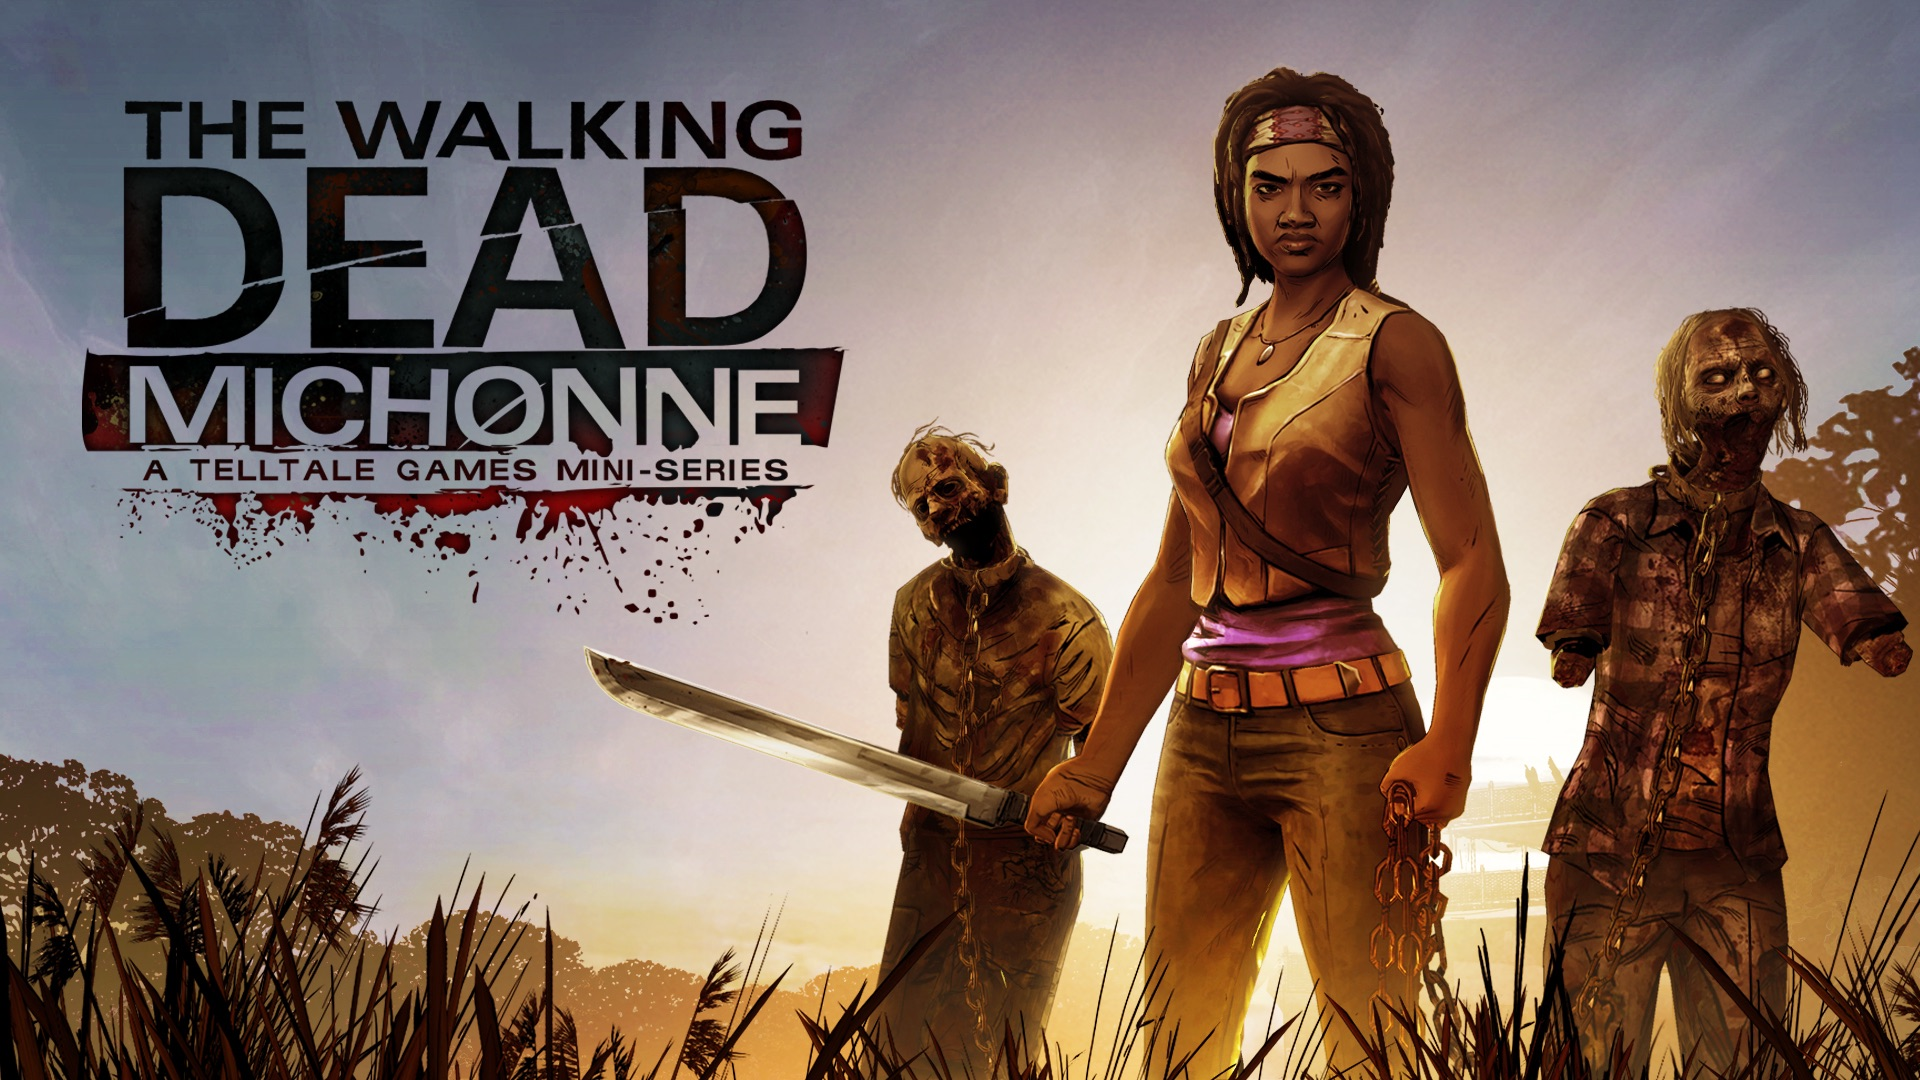 E3 2015: Telltale unveils Walking Dead mini-series featuring comic character Michonne